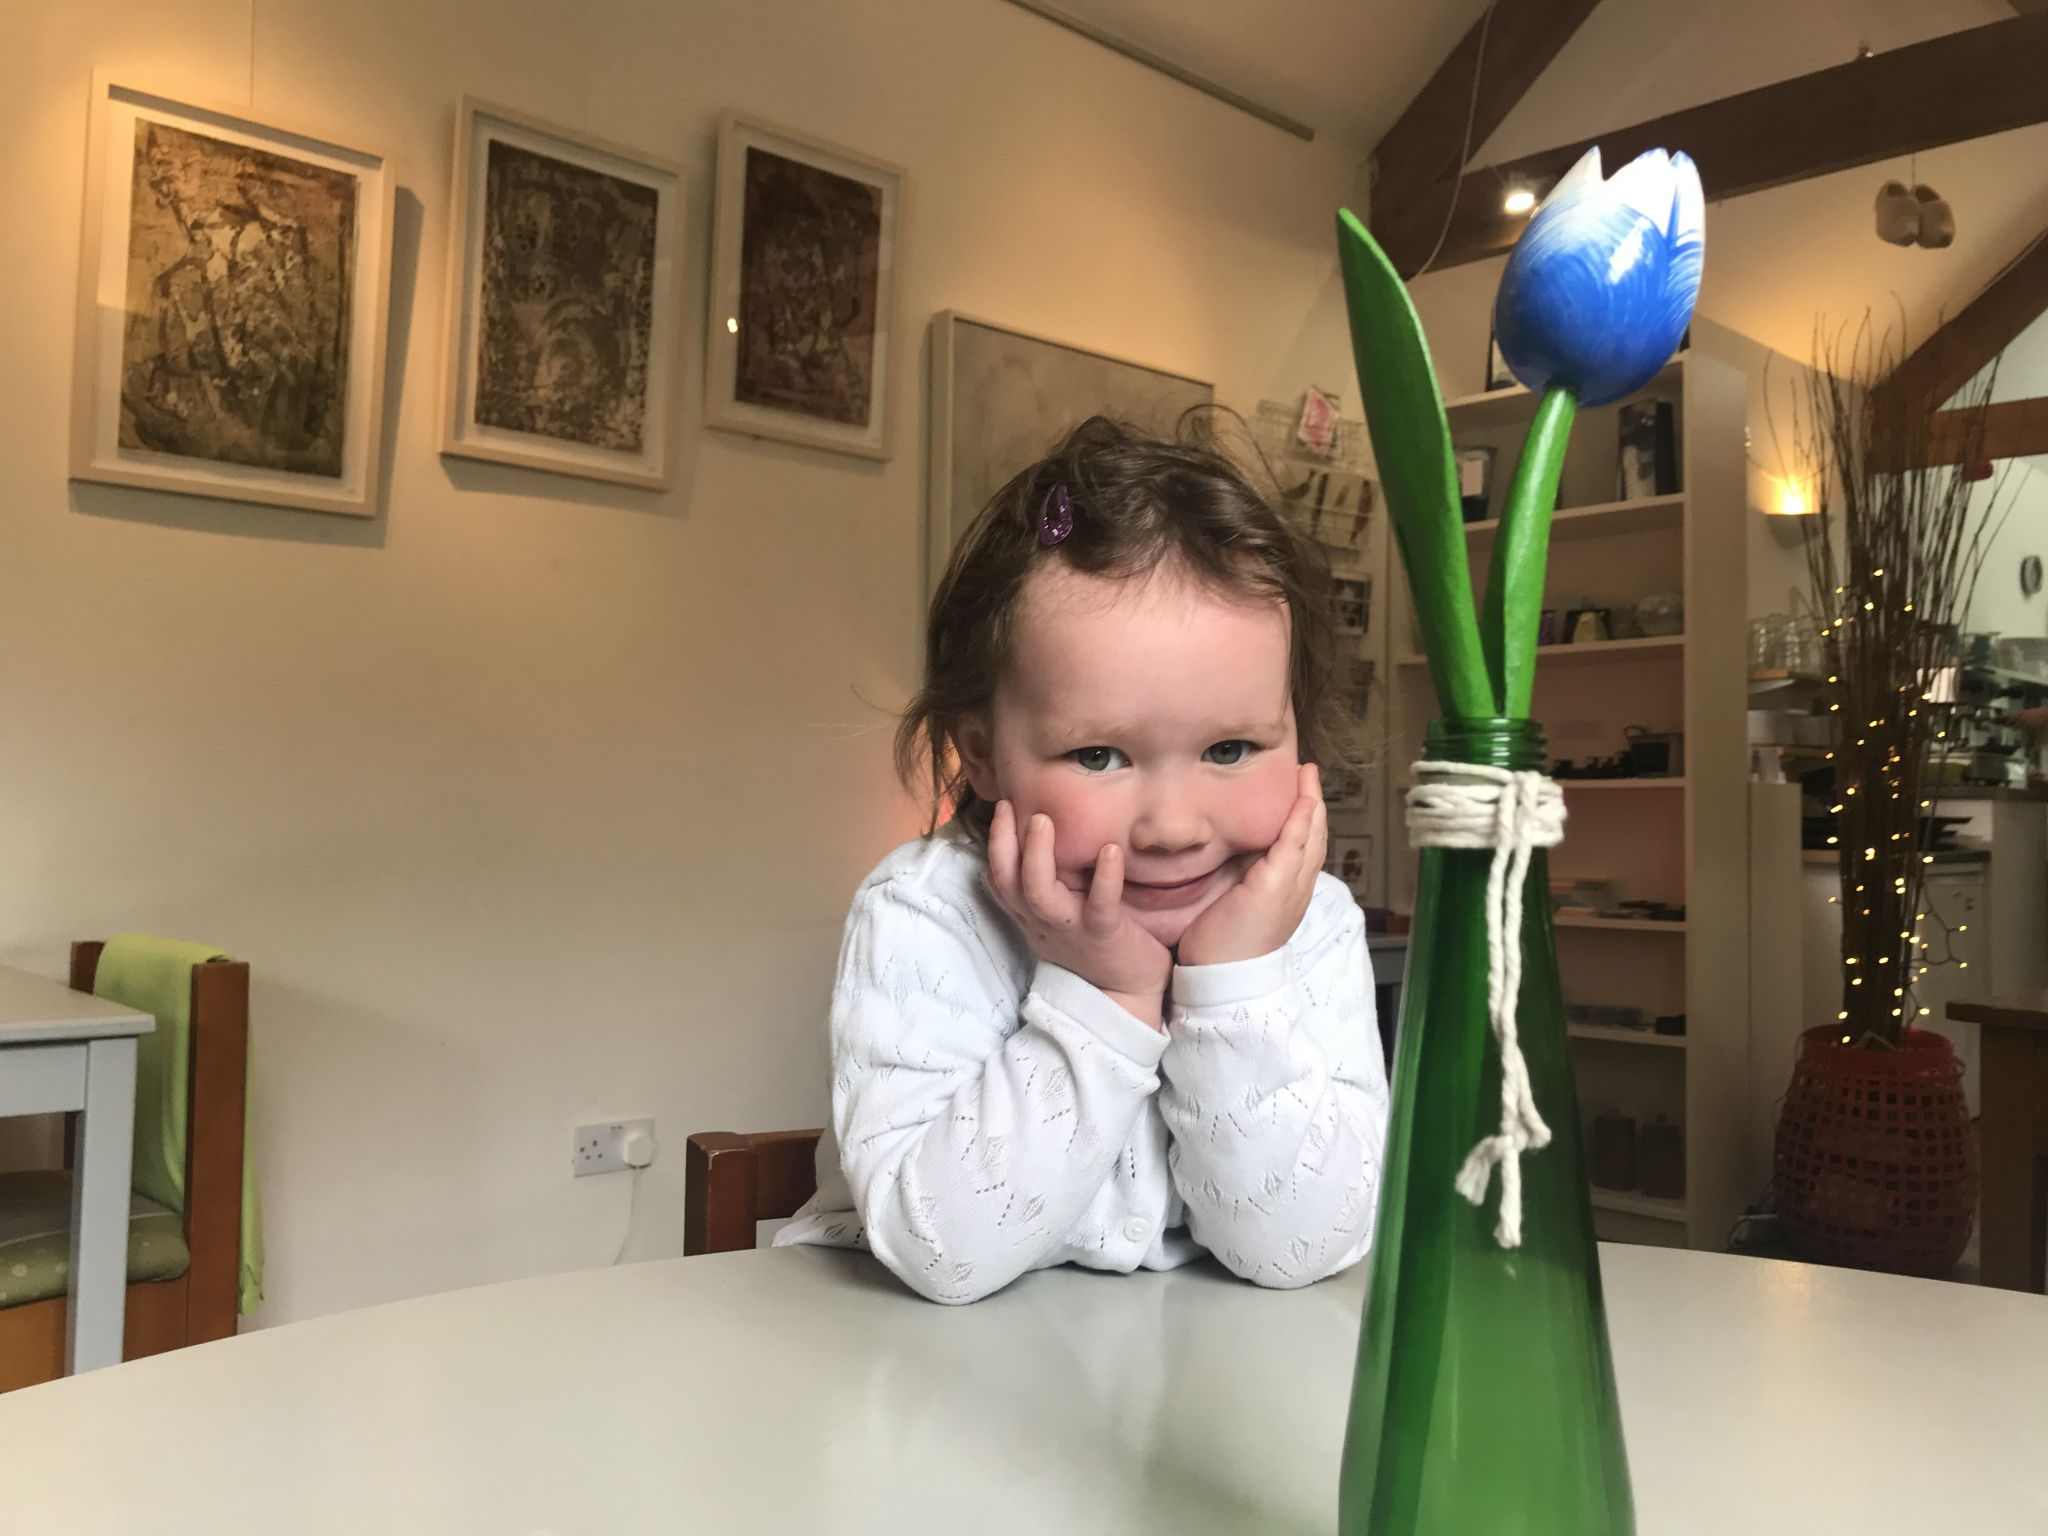 a toddler sat in a cafe posing for a picture with her hands on her chin smiling